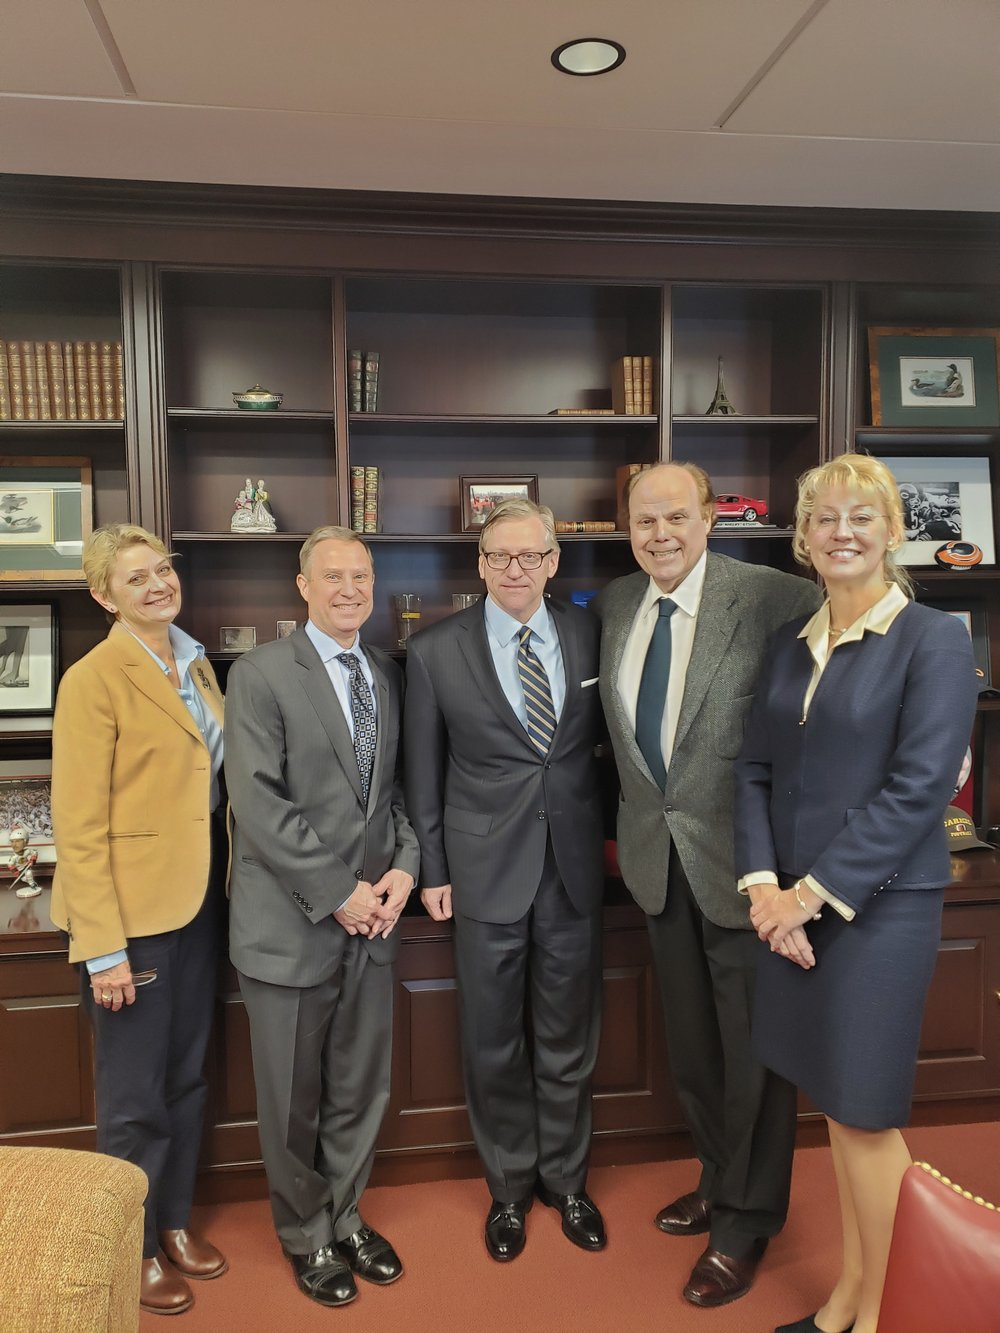 Pictured are: LFS Board Members Beth Miller, Ray Frick, and Kim Campbell with Stephen Milota and David Lee of Lake Forest Bank & Trust.